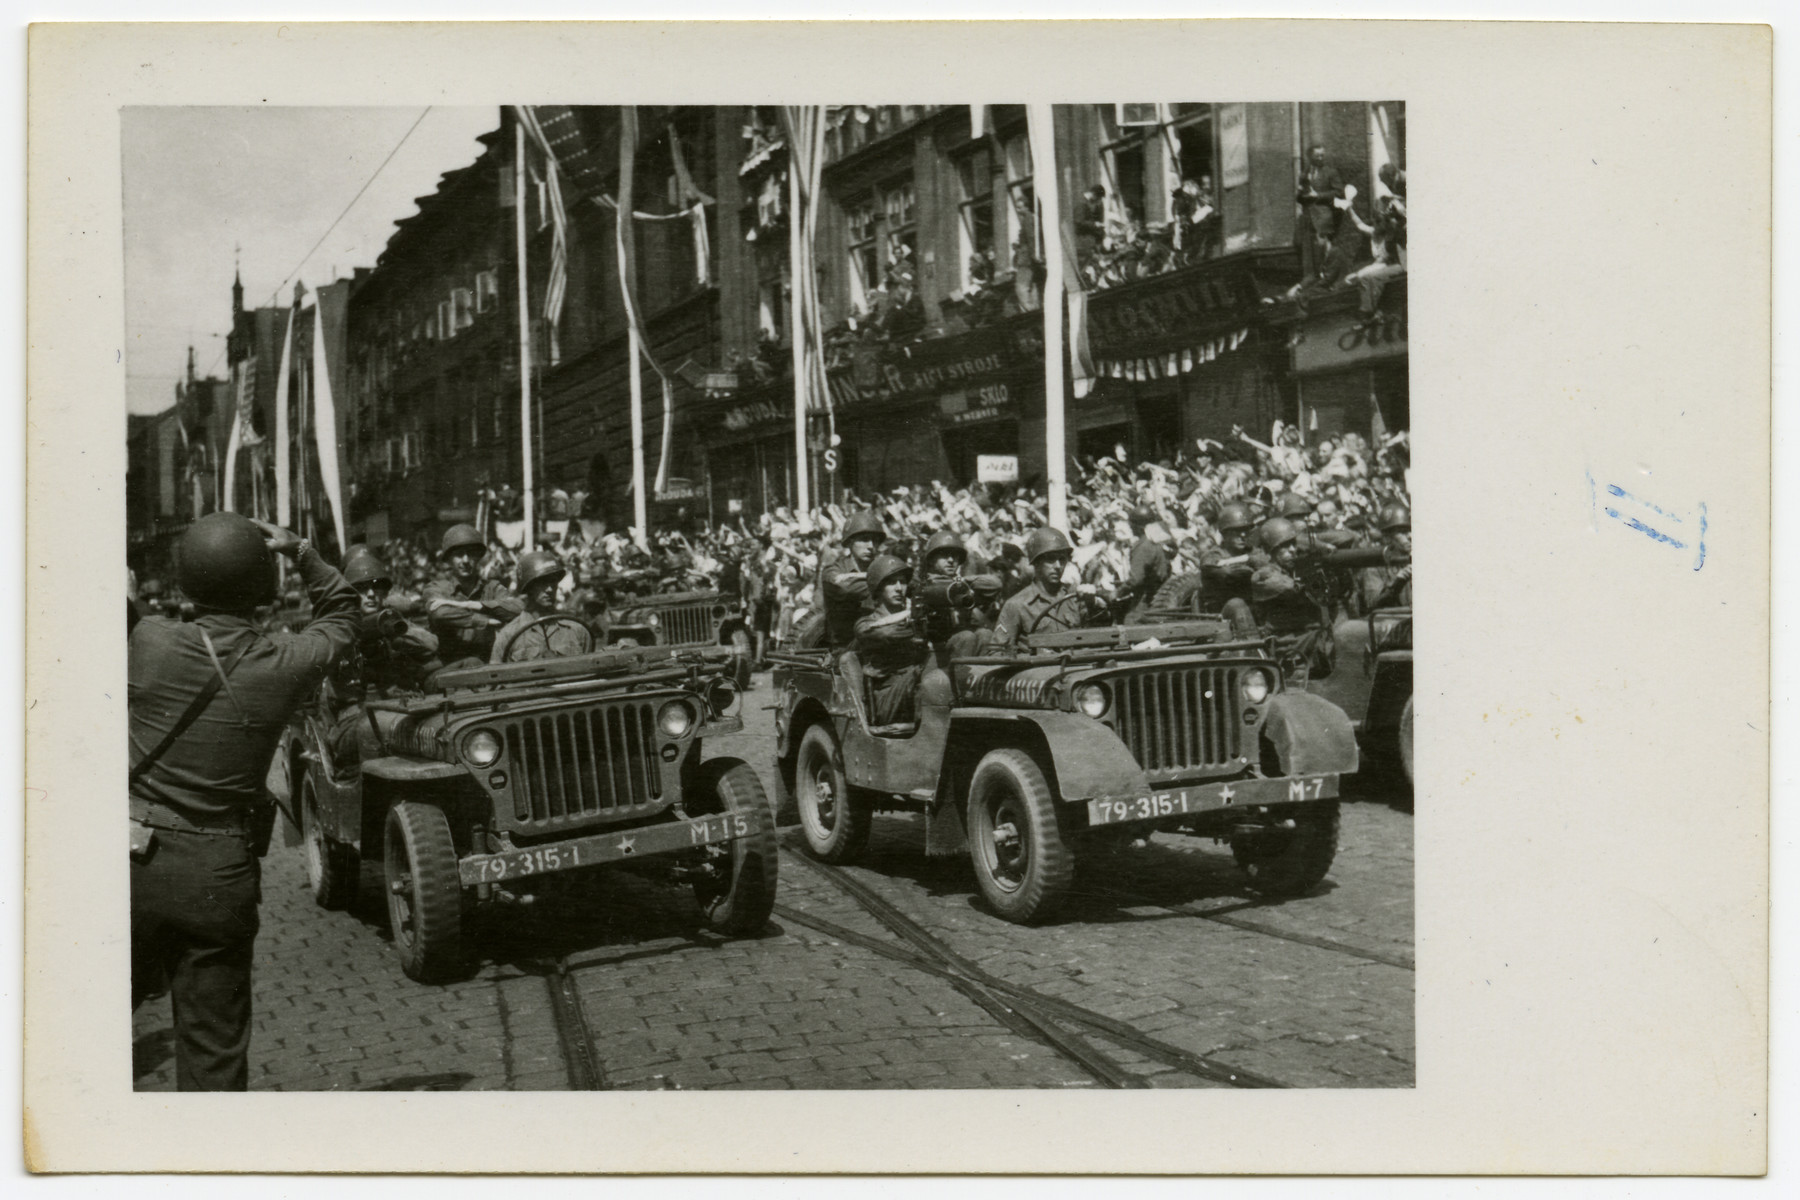 American soldiers drive through Pilsen, Czechoslovakia on its liberation day.